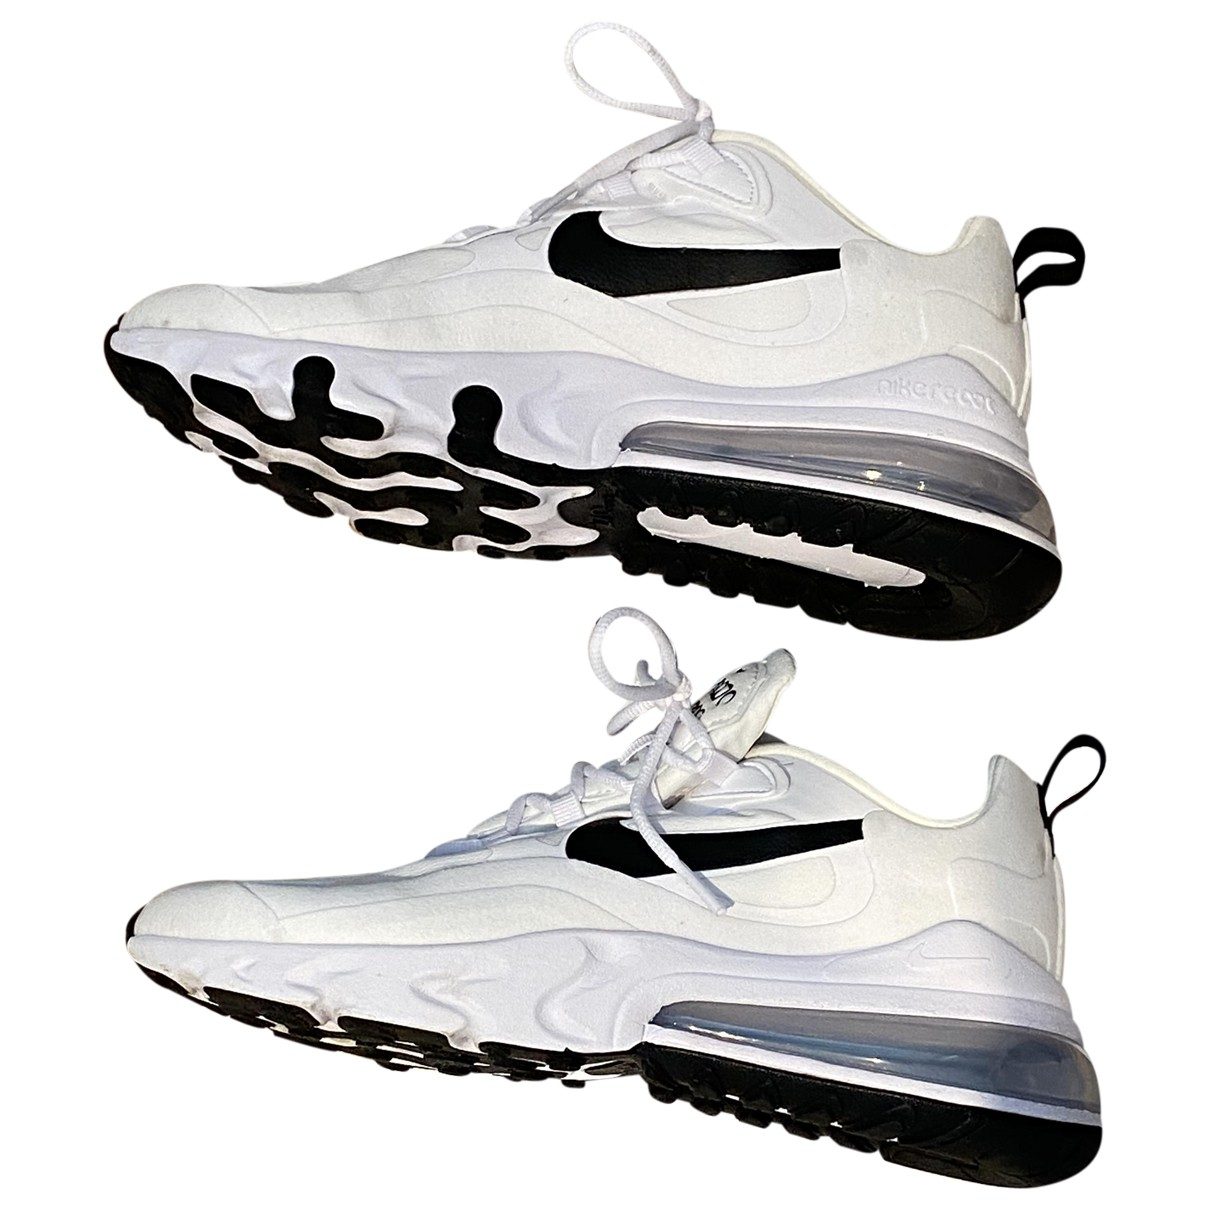 Nike Air Max 270  White Cloth Trainers for Women 5.5 UK